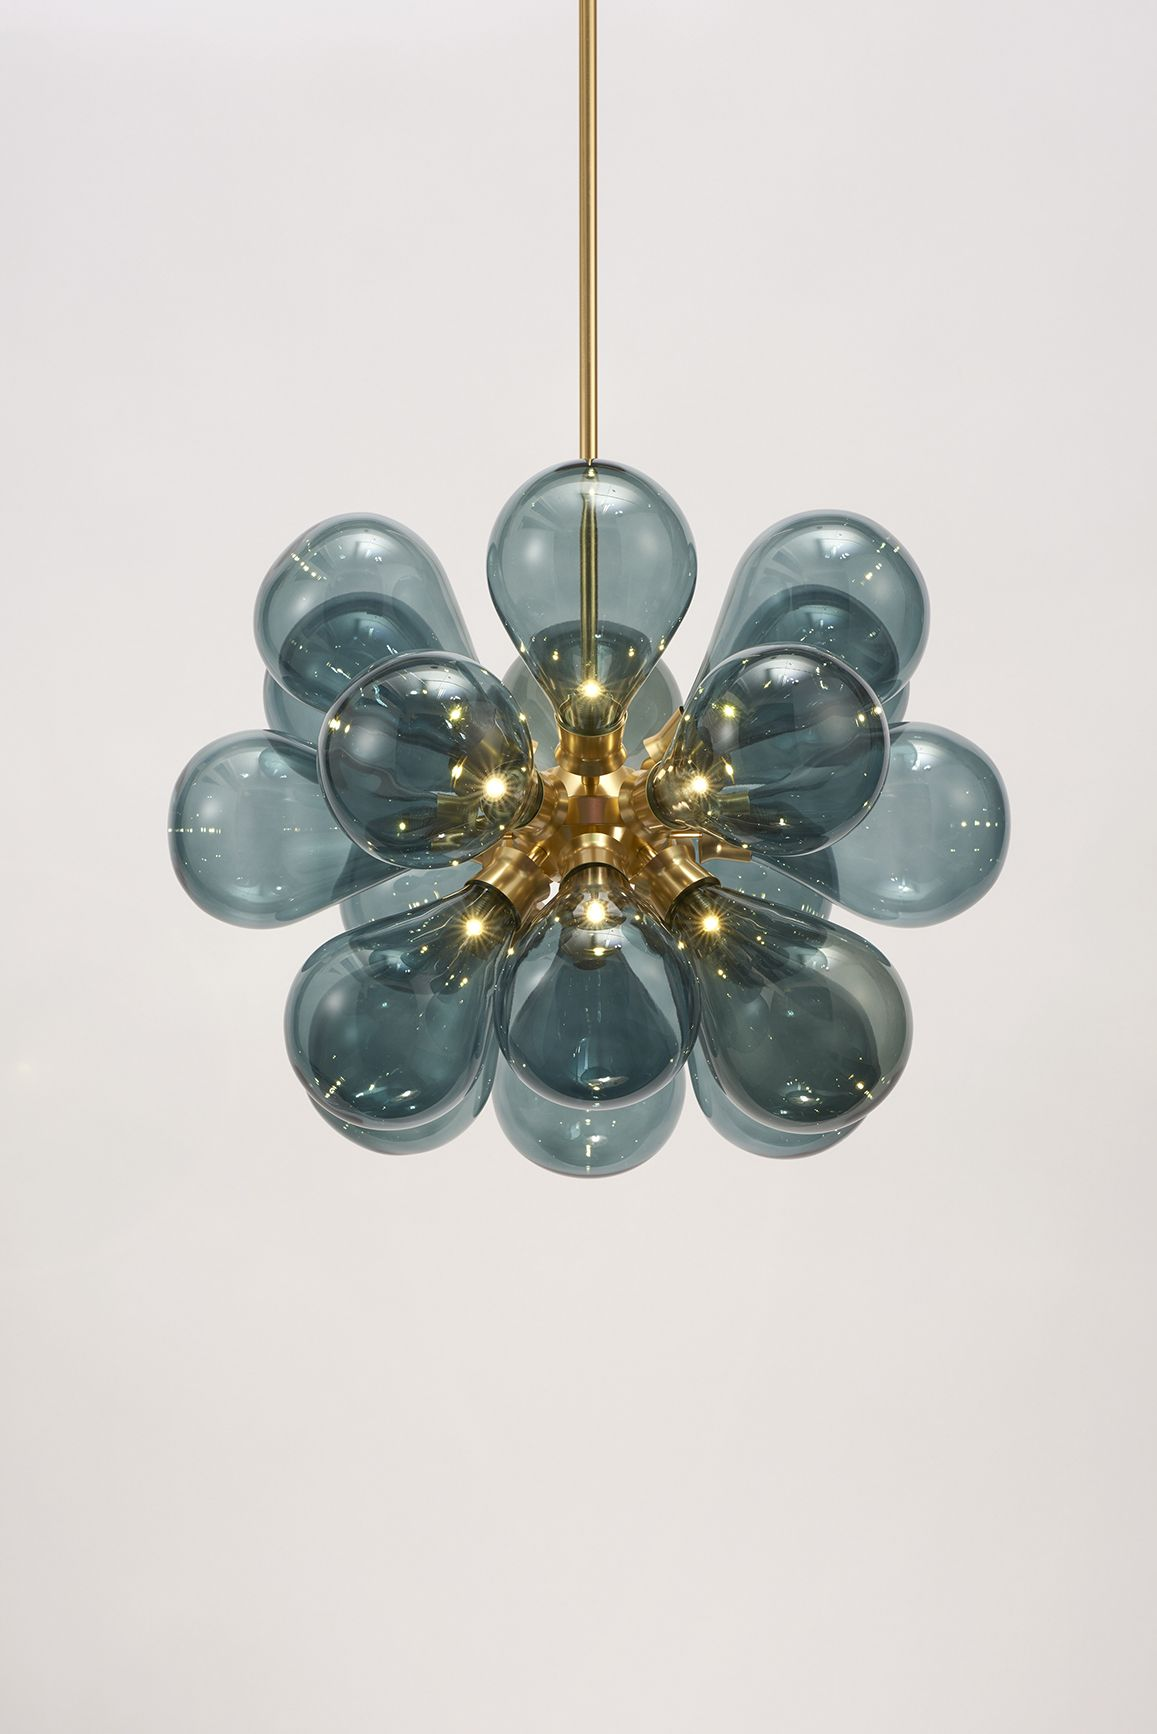 Designer Hanging Light Fittings Cintola Maxi Pendant Contemporary Lighting Products